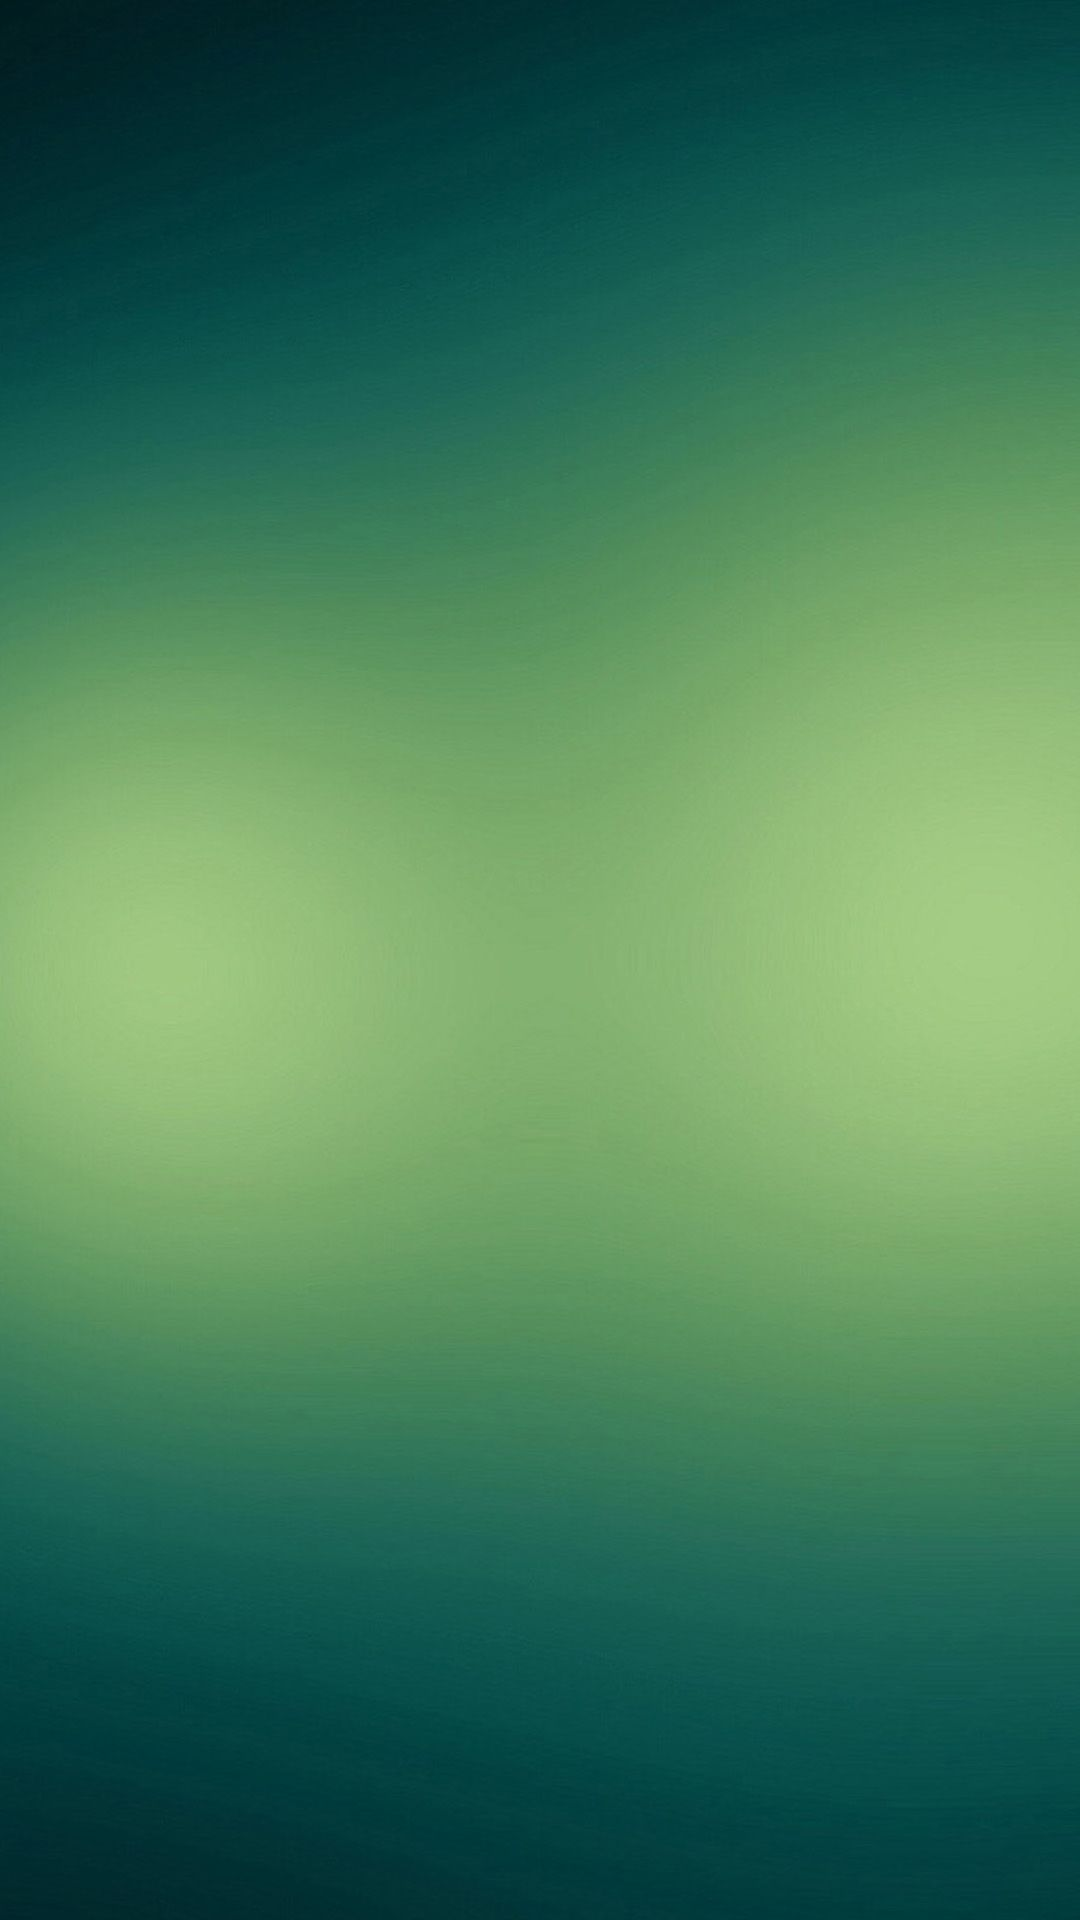 green yellow bokeh lights android wallpaper free download